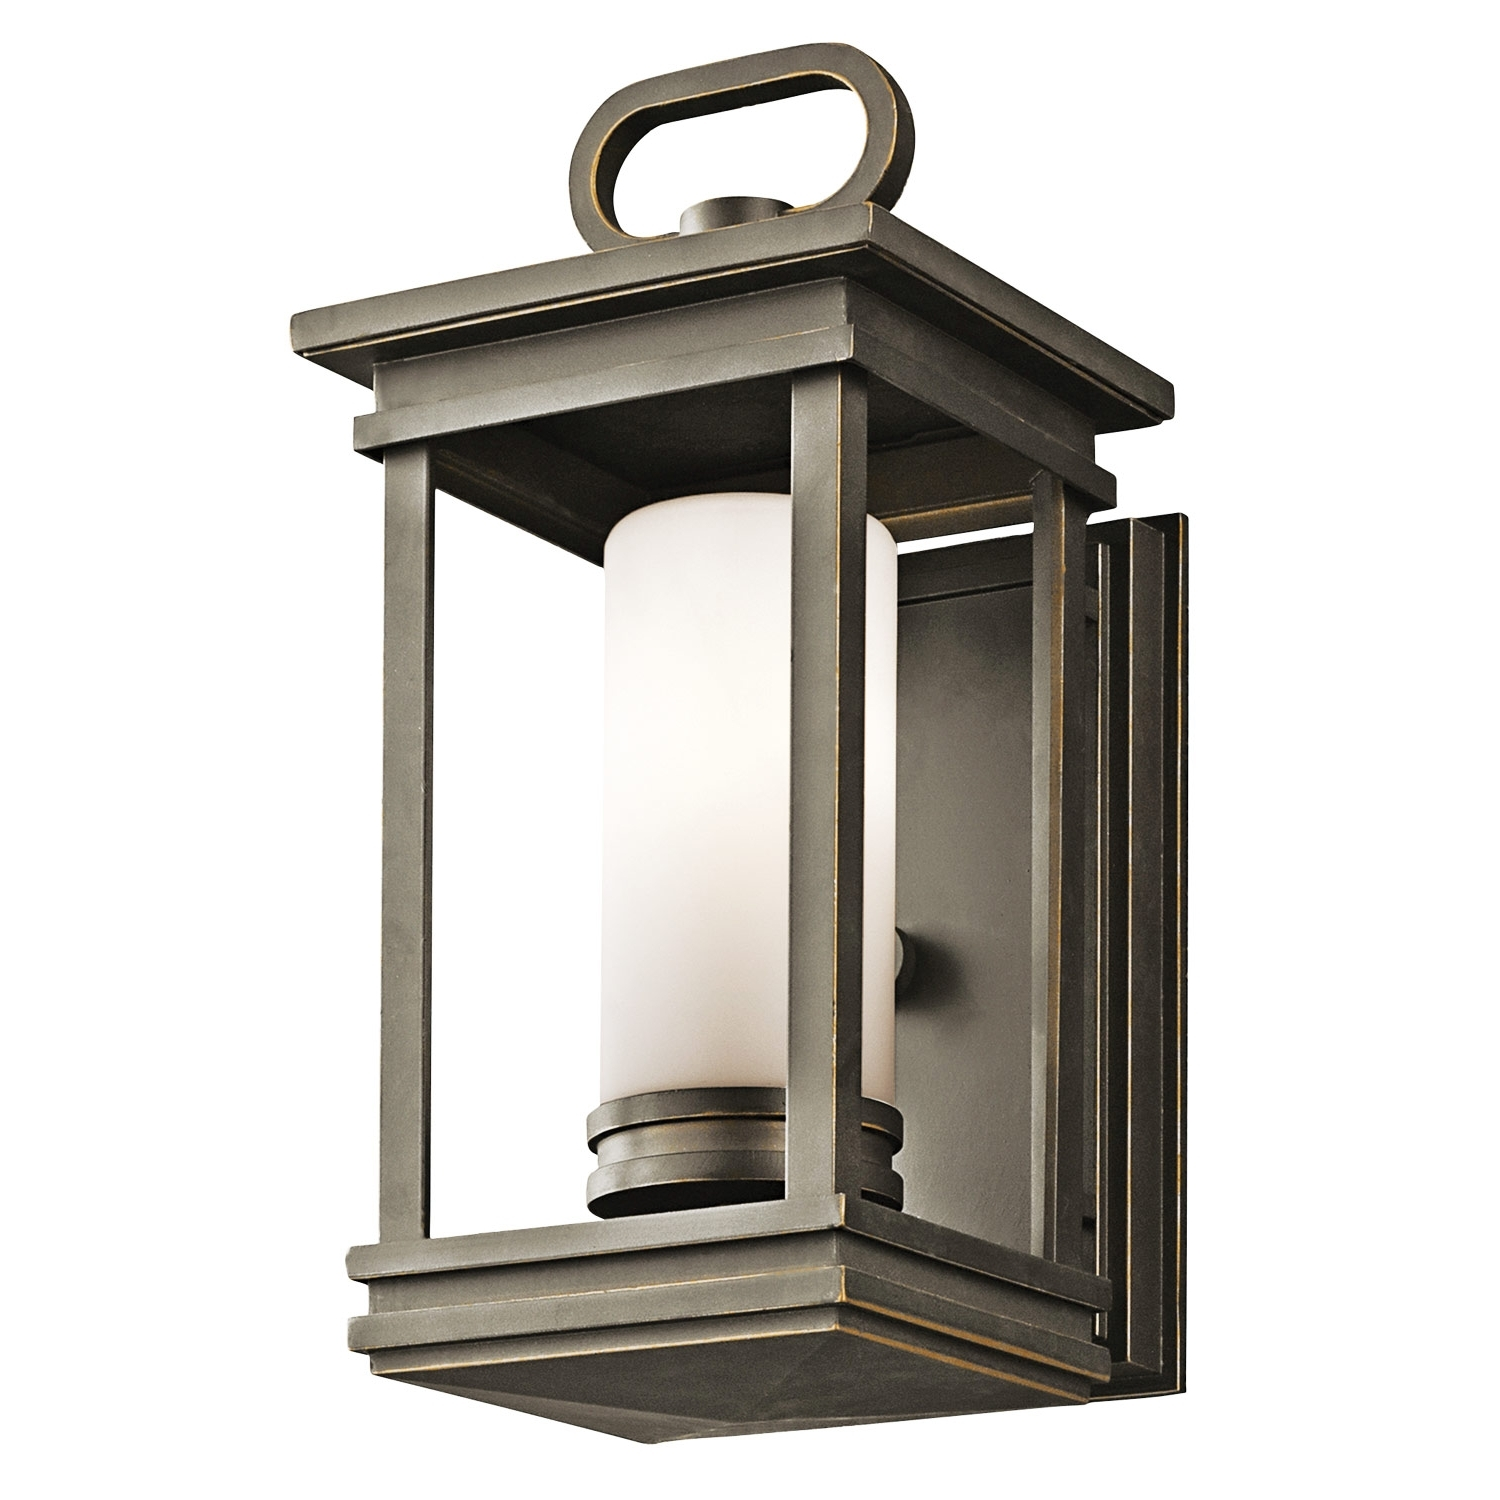 Most Recently Released Outdoor Lanterns At Argos Inside Fixtures Light : Excellent Outdoor Wall Lighting Brushed Nickel (View 11 of 20)